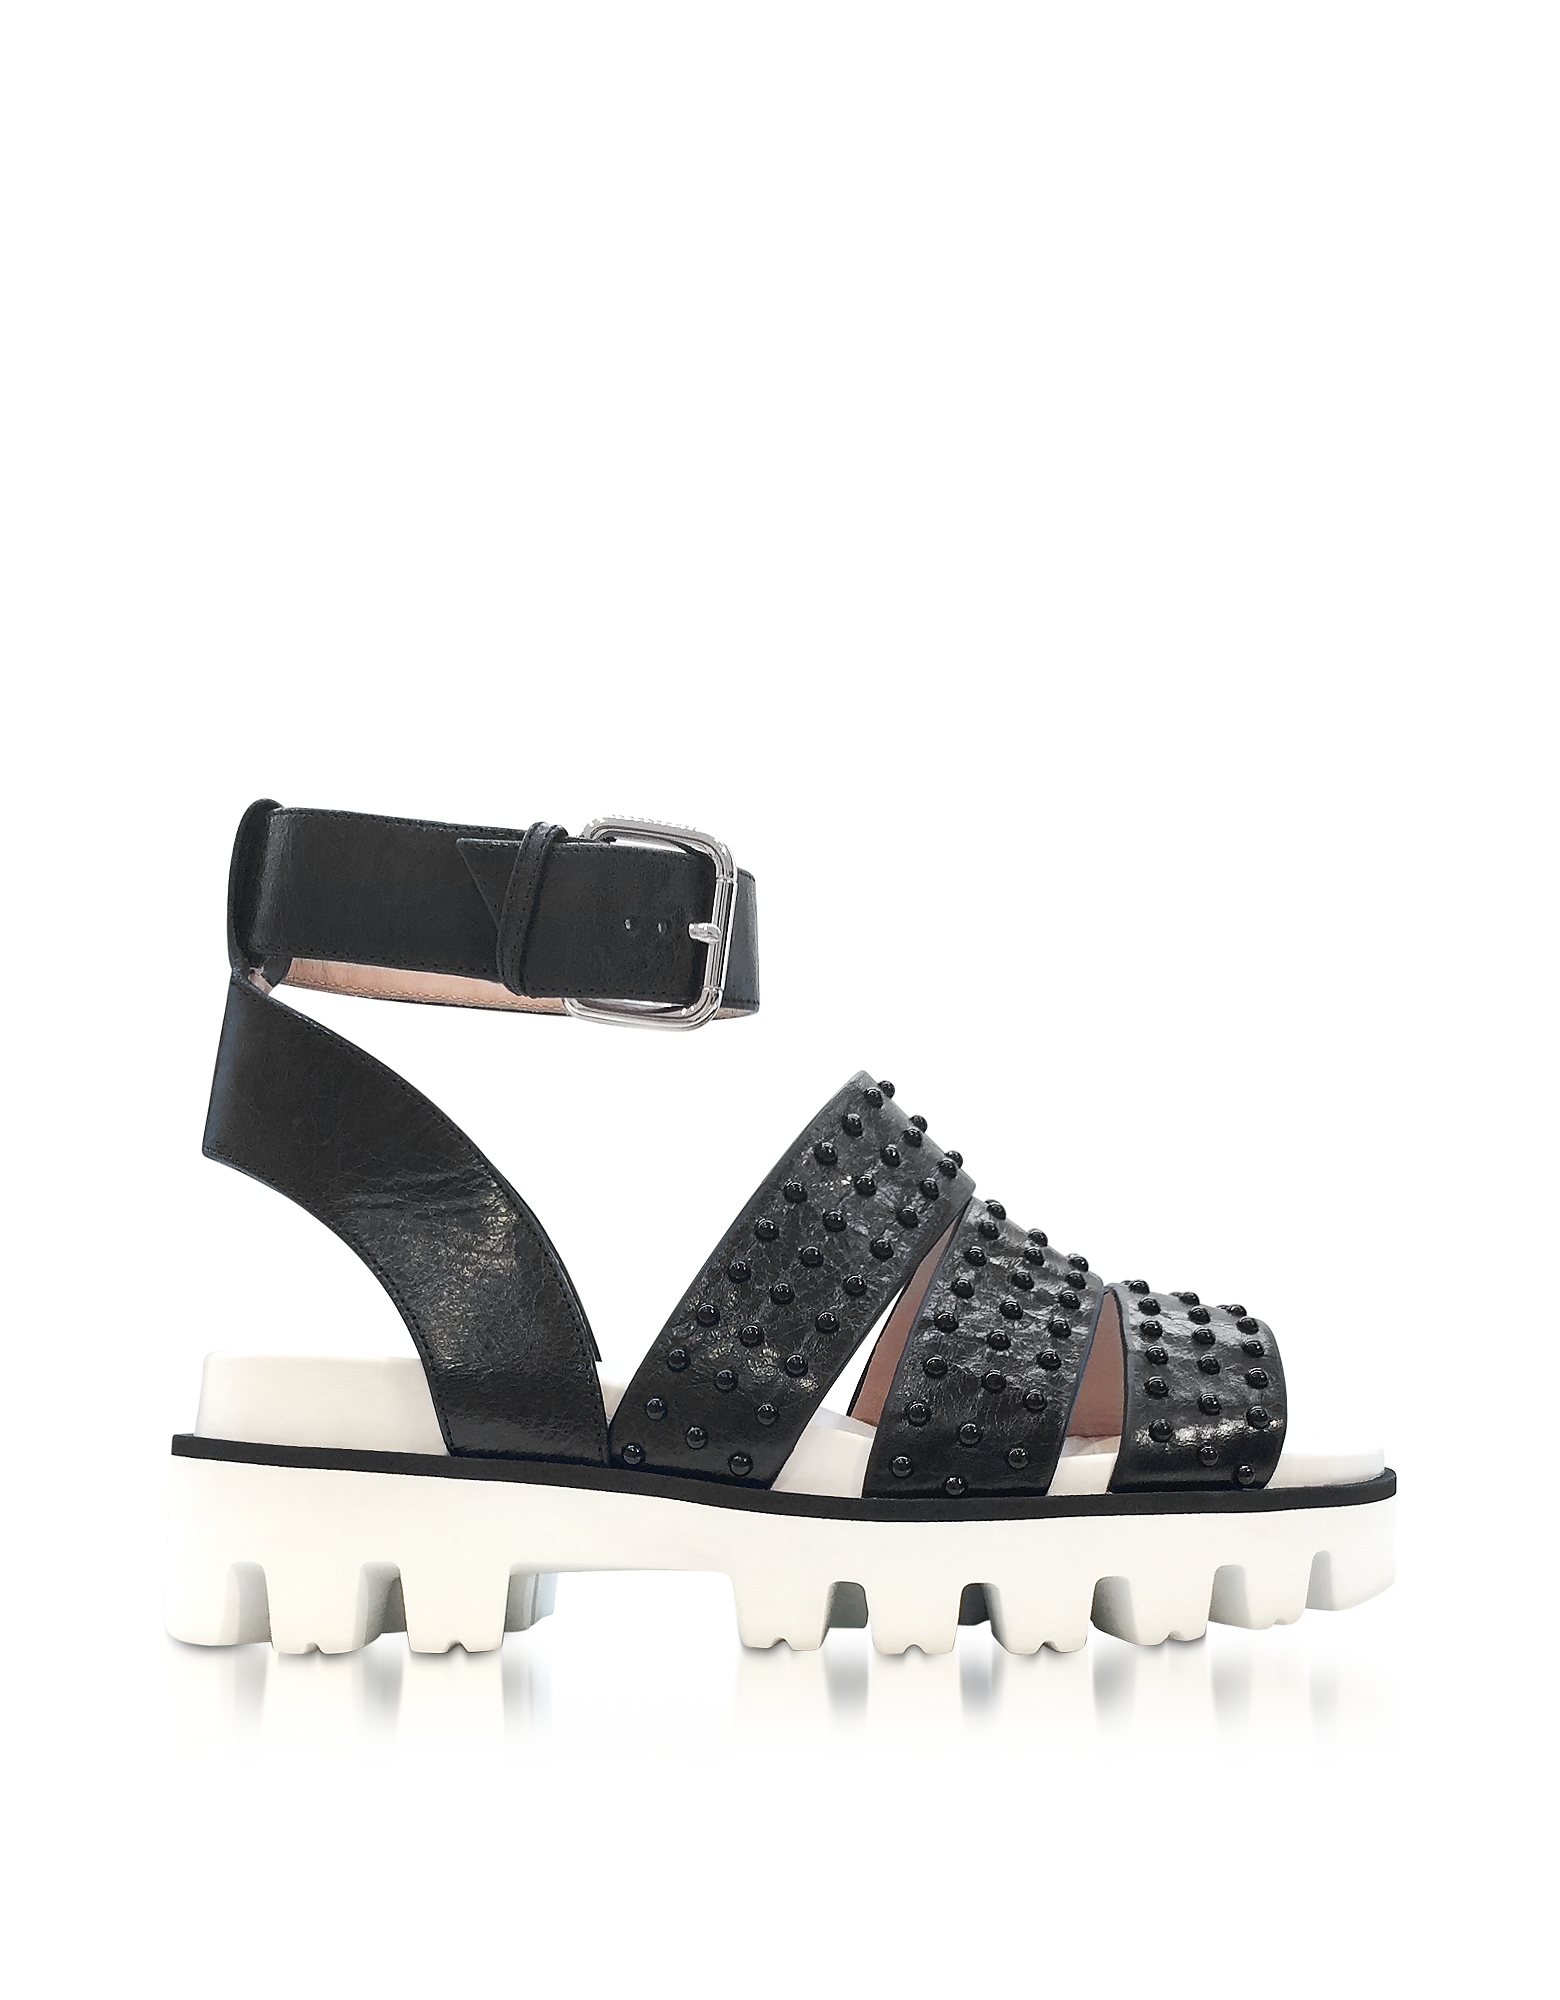 Image of RED Valentino Designer Shoes, Black Leather Flat Sandals w/Studs